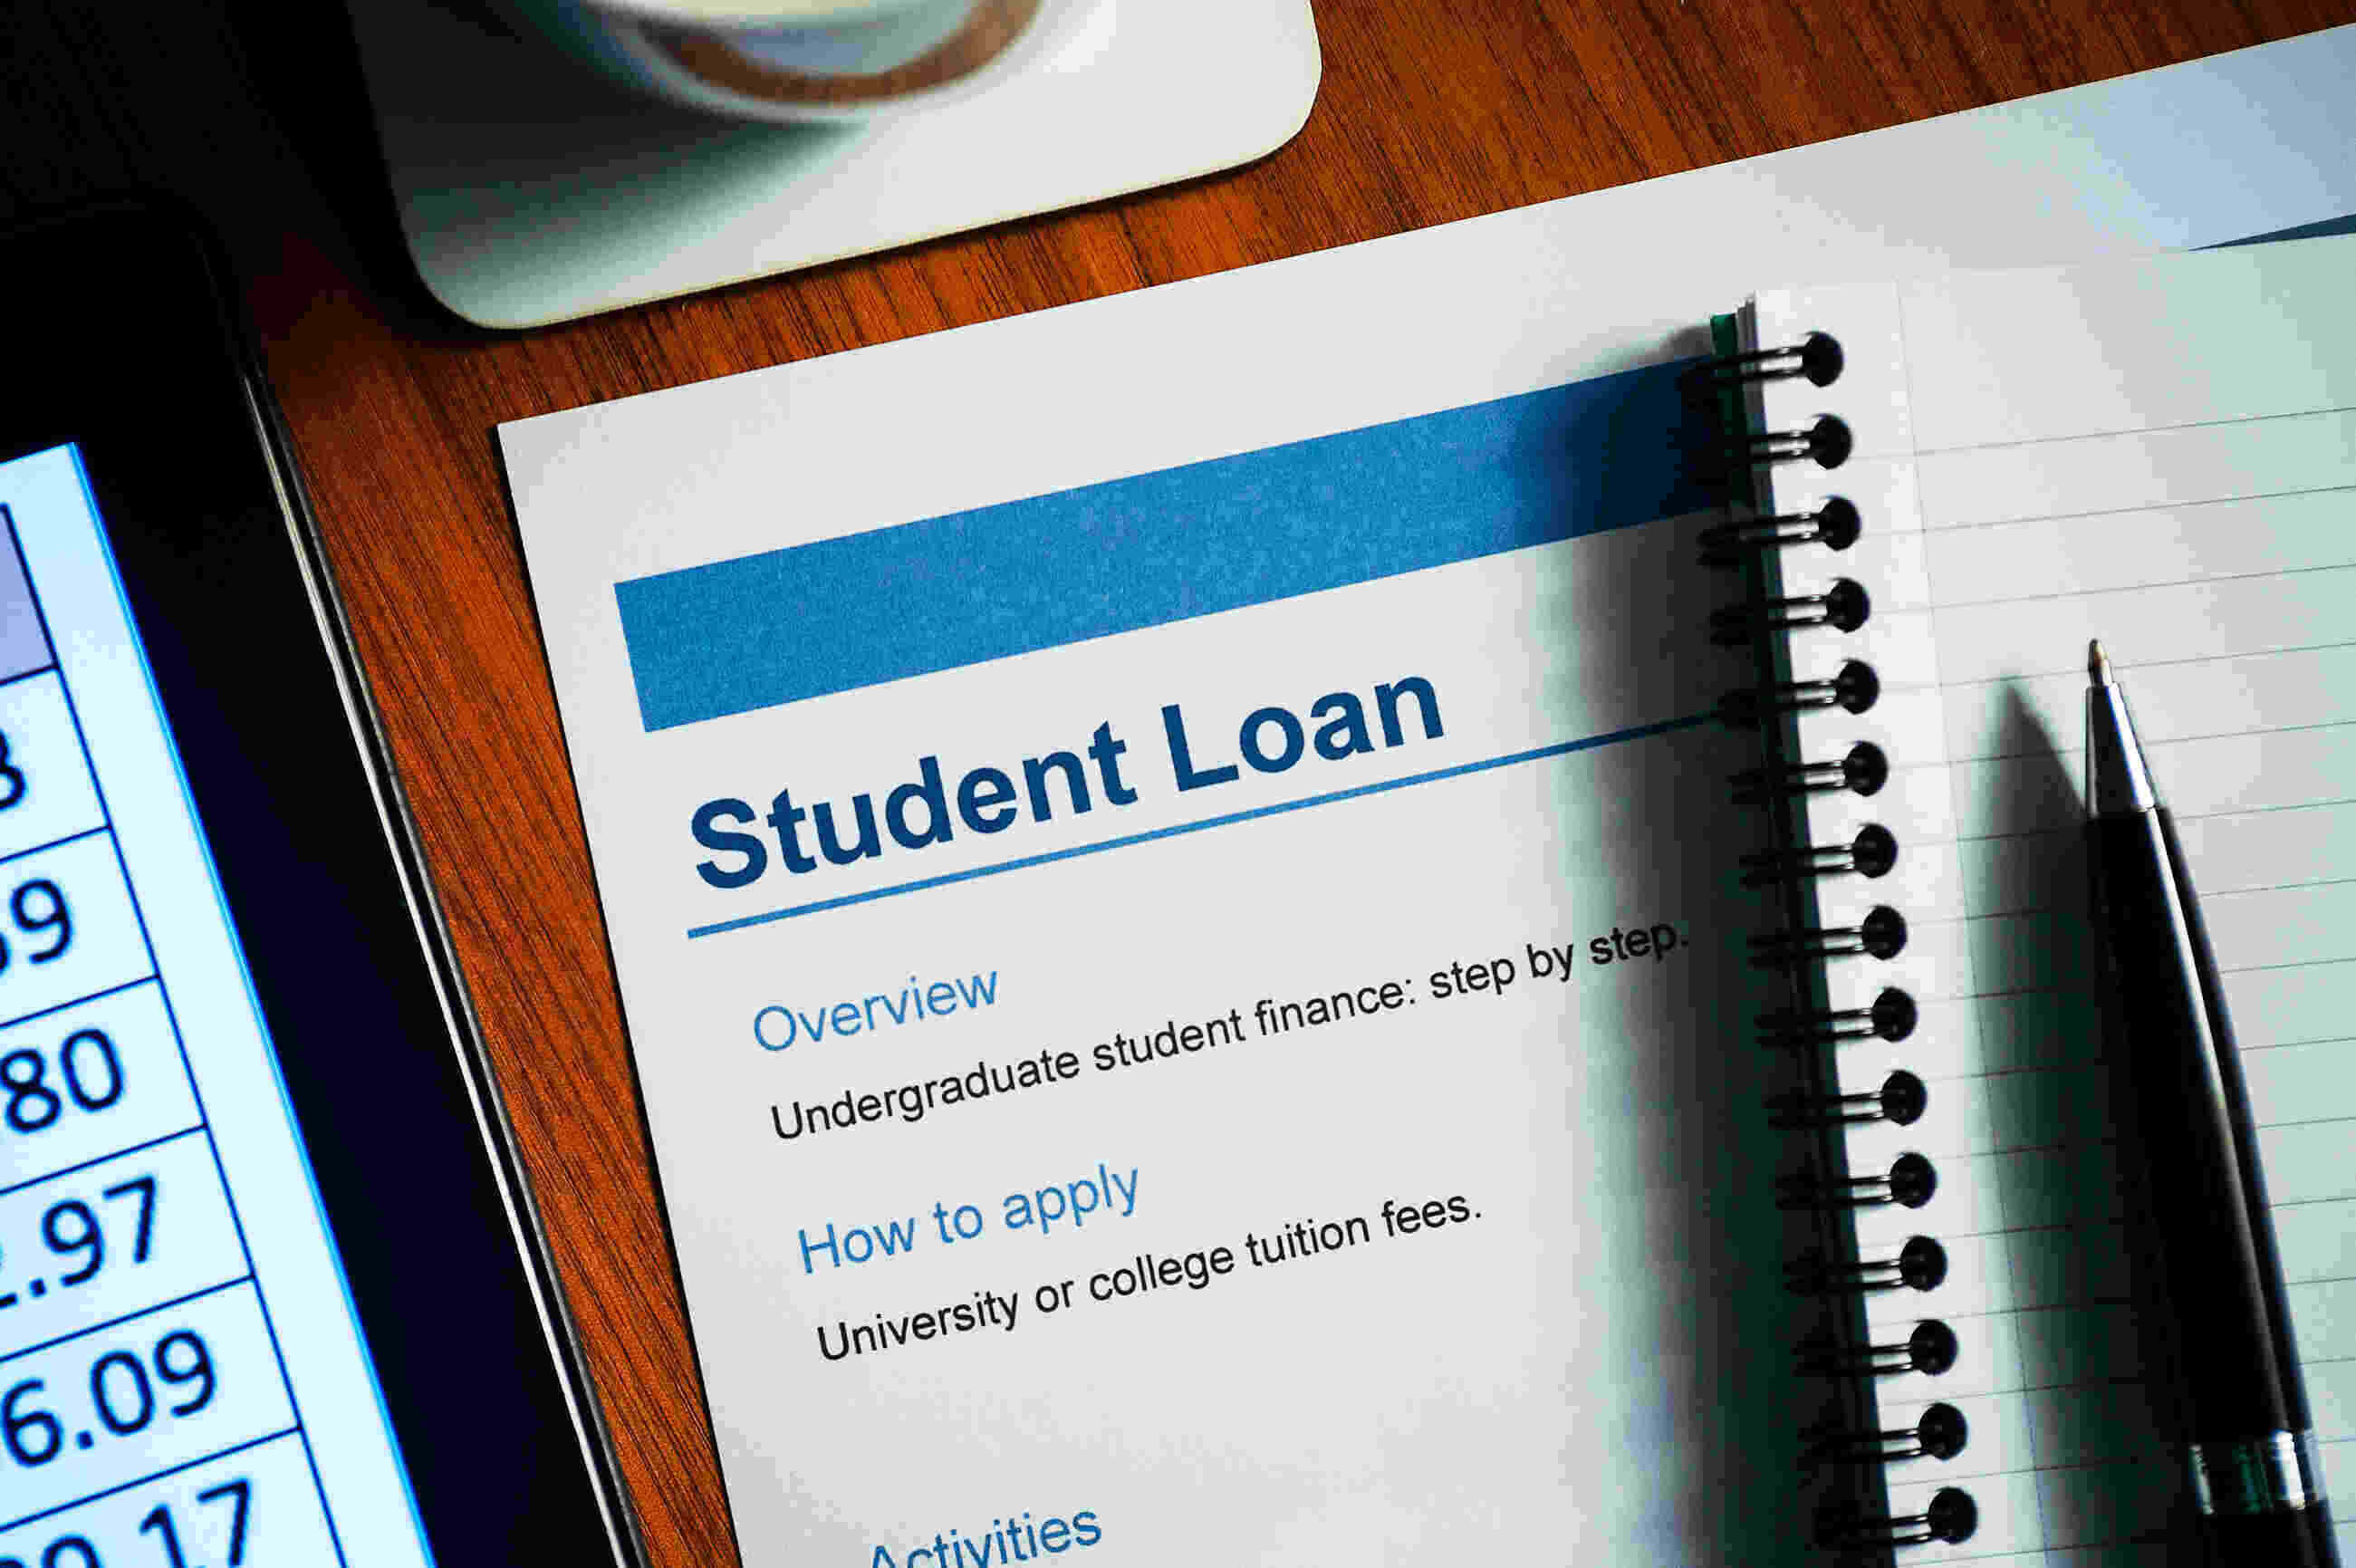 New Grad? Get a Handle on Student Debt Before It's Too Late